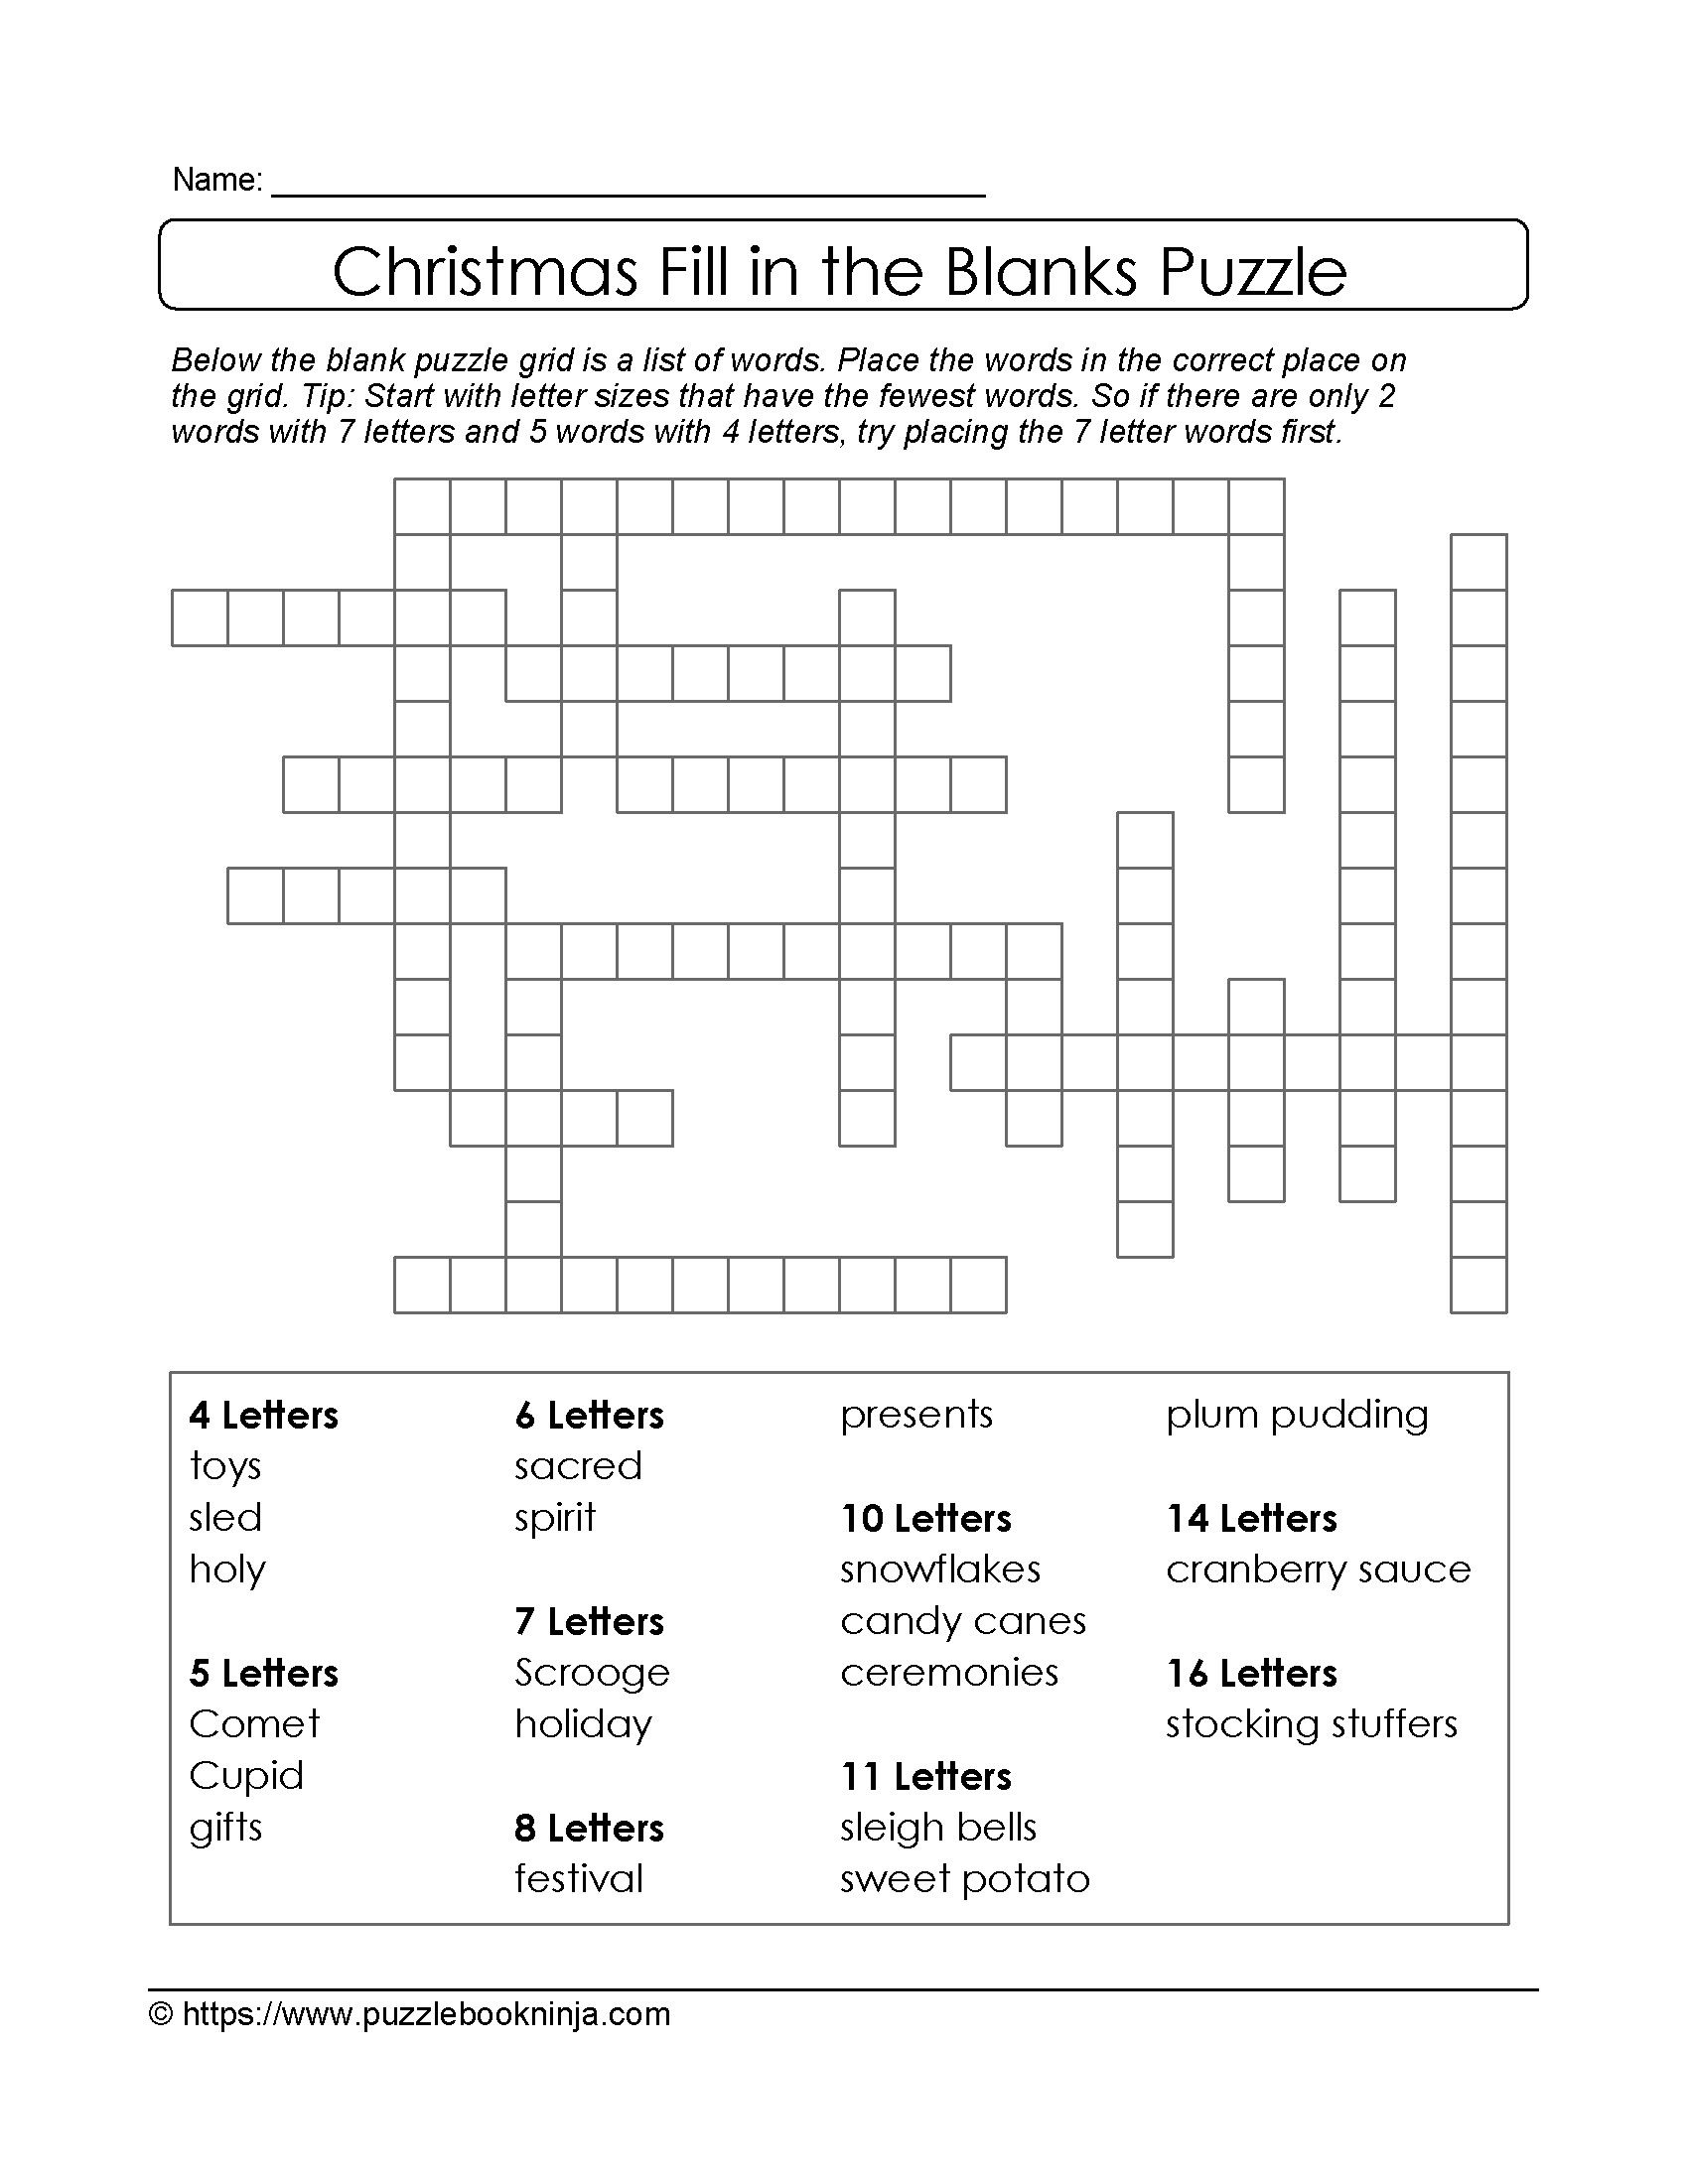 Puzzles To Print. Free Xmas Theme Fill In The Blanks Puzzle - Printable Blank Crossword